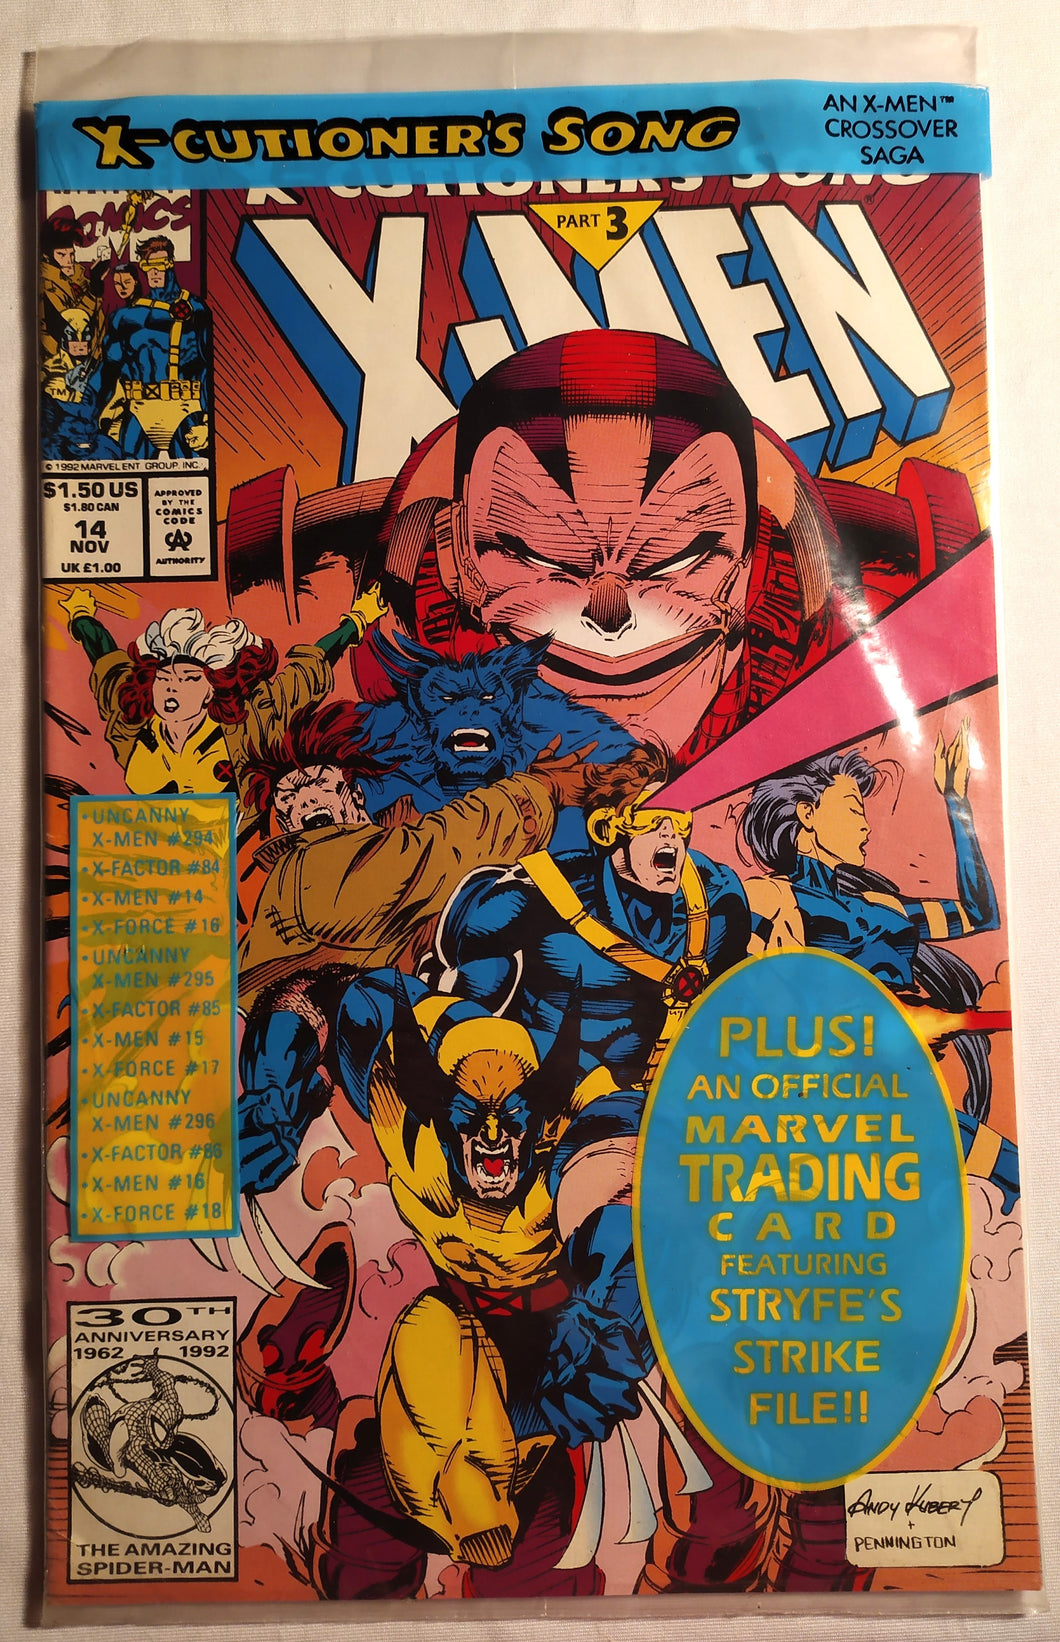 X-Men #14 - X-Cutioners Song Part 3 - In Original Sleeve with Trading Card!